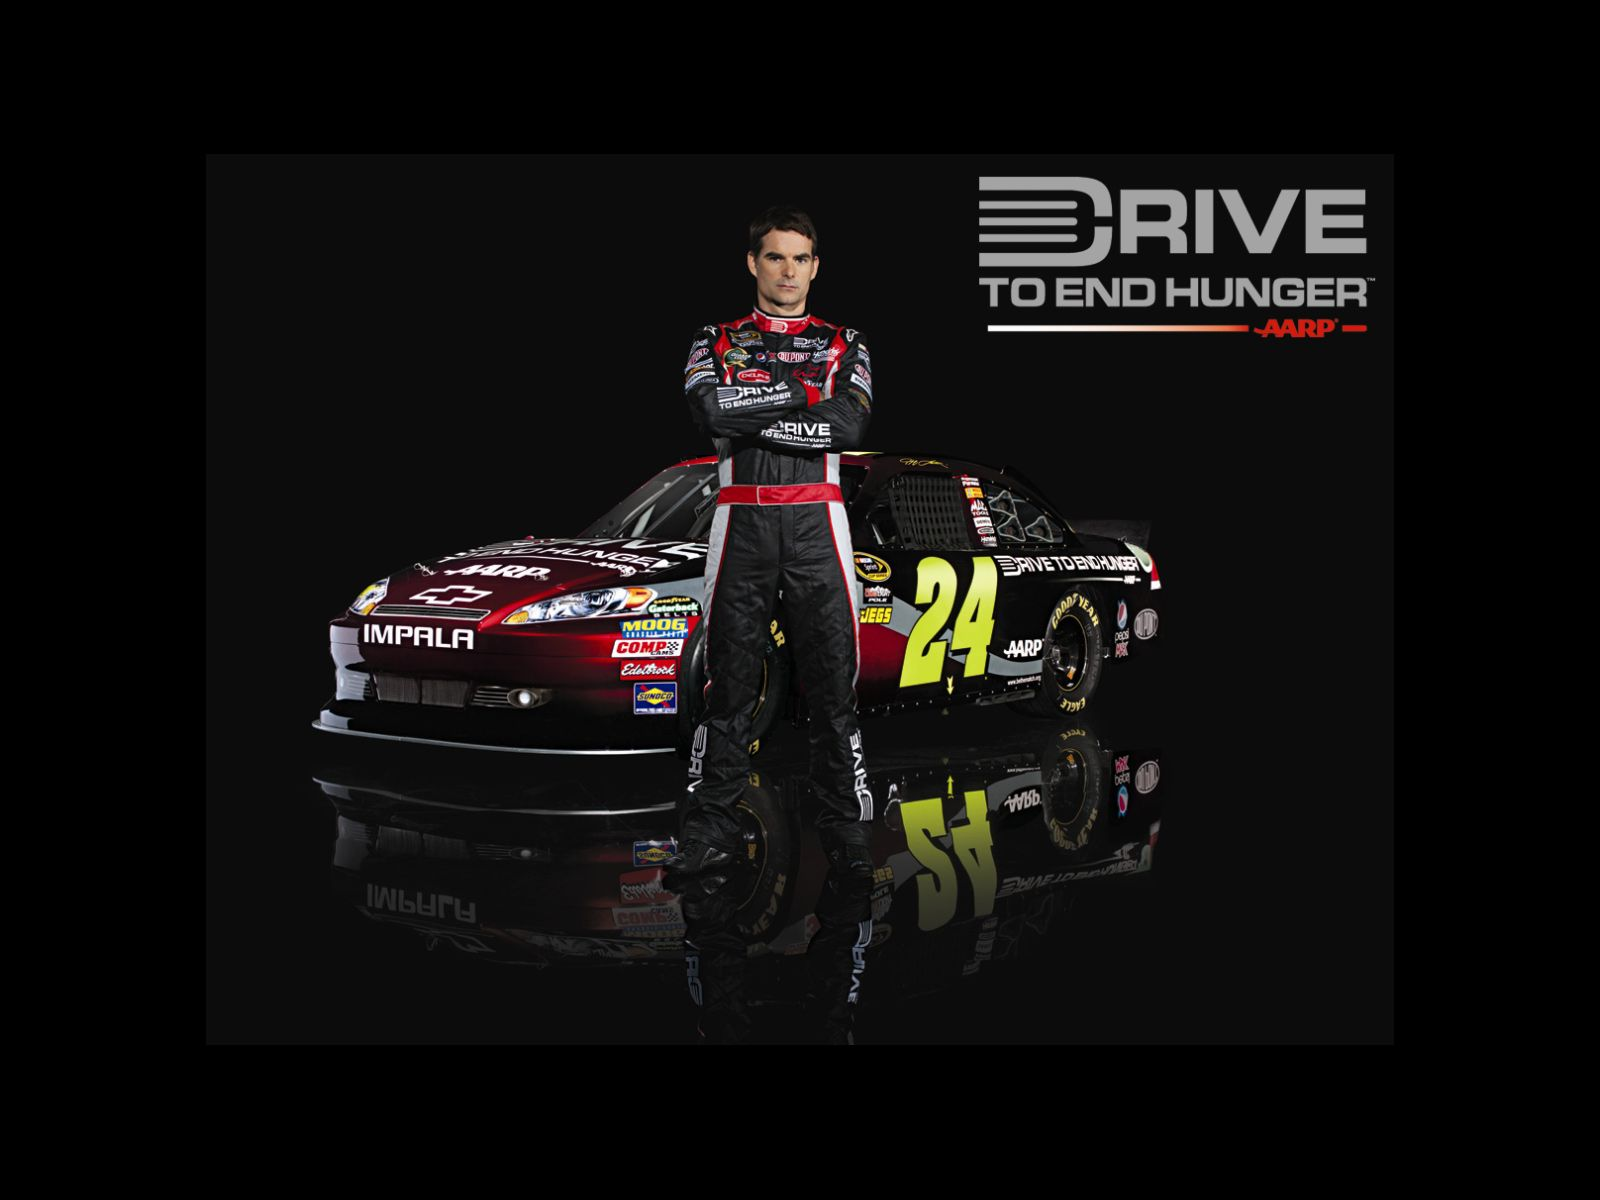 Nascar Jeff Gordon Wallpaper Free Download Wallpaper From Wallpaperank Com Jeff Gordon Gordon Nascar